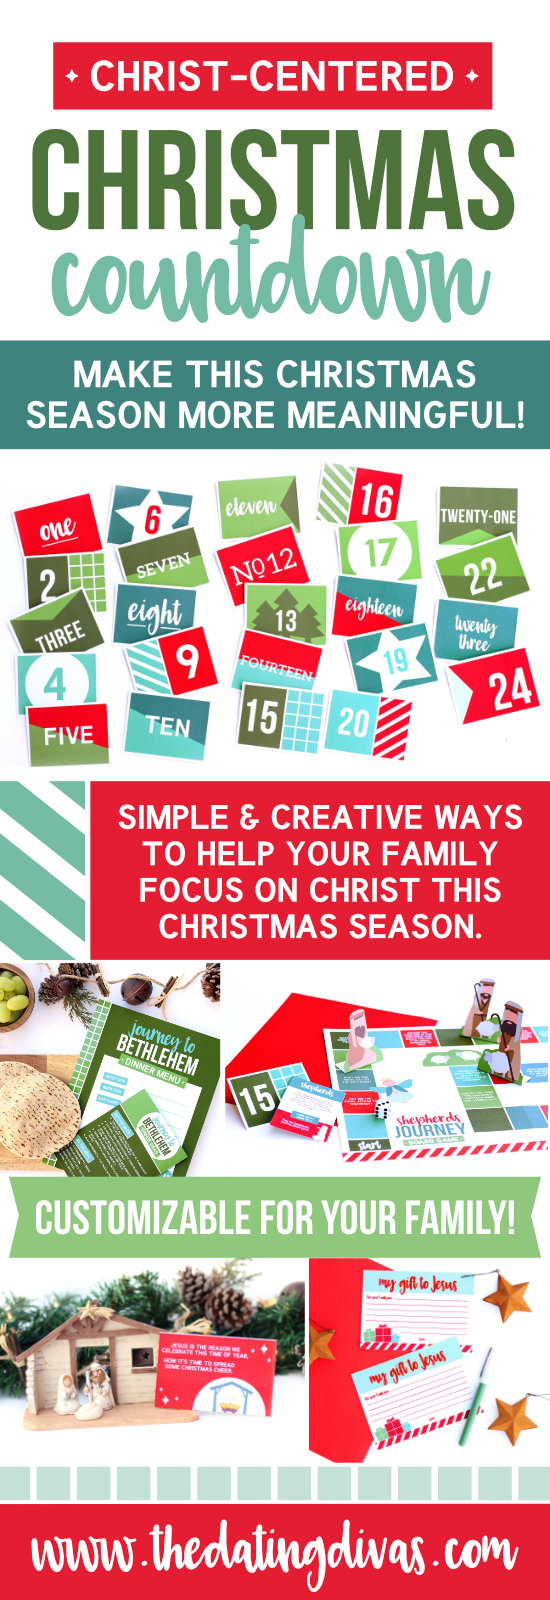 Christ-Centered Christmas Countdown - Christmas activities for the whole family that focus on Christ. #keepchristinchristmas #christmascountdown